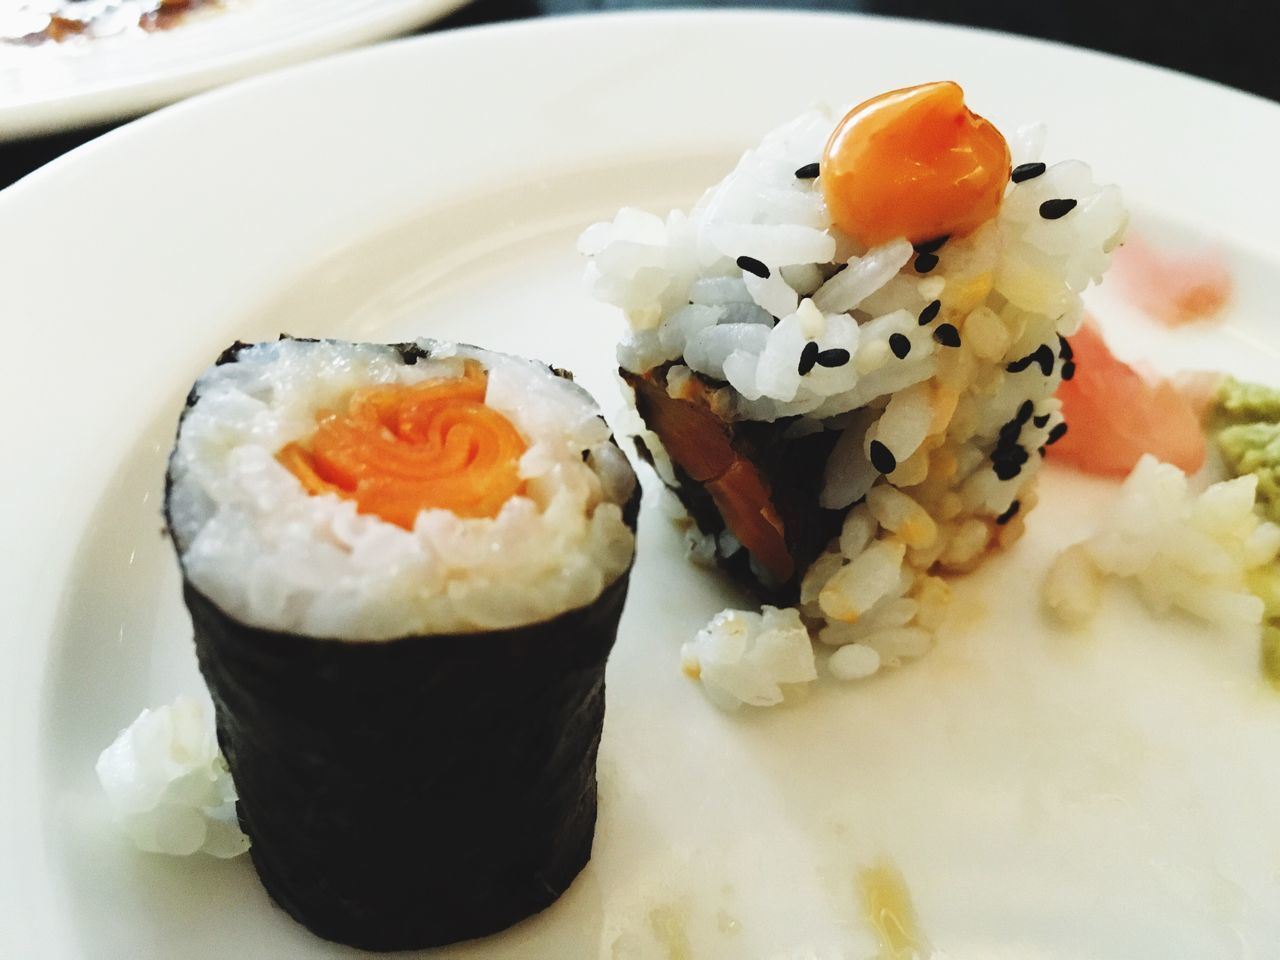 food and drink, plate, food, ready-to-eat, rice - food staple, freshness, healthy eating, close-up, serving size, sushi, no people, indoors, seafood, day